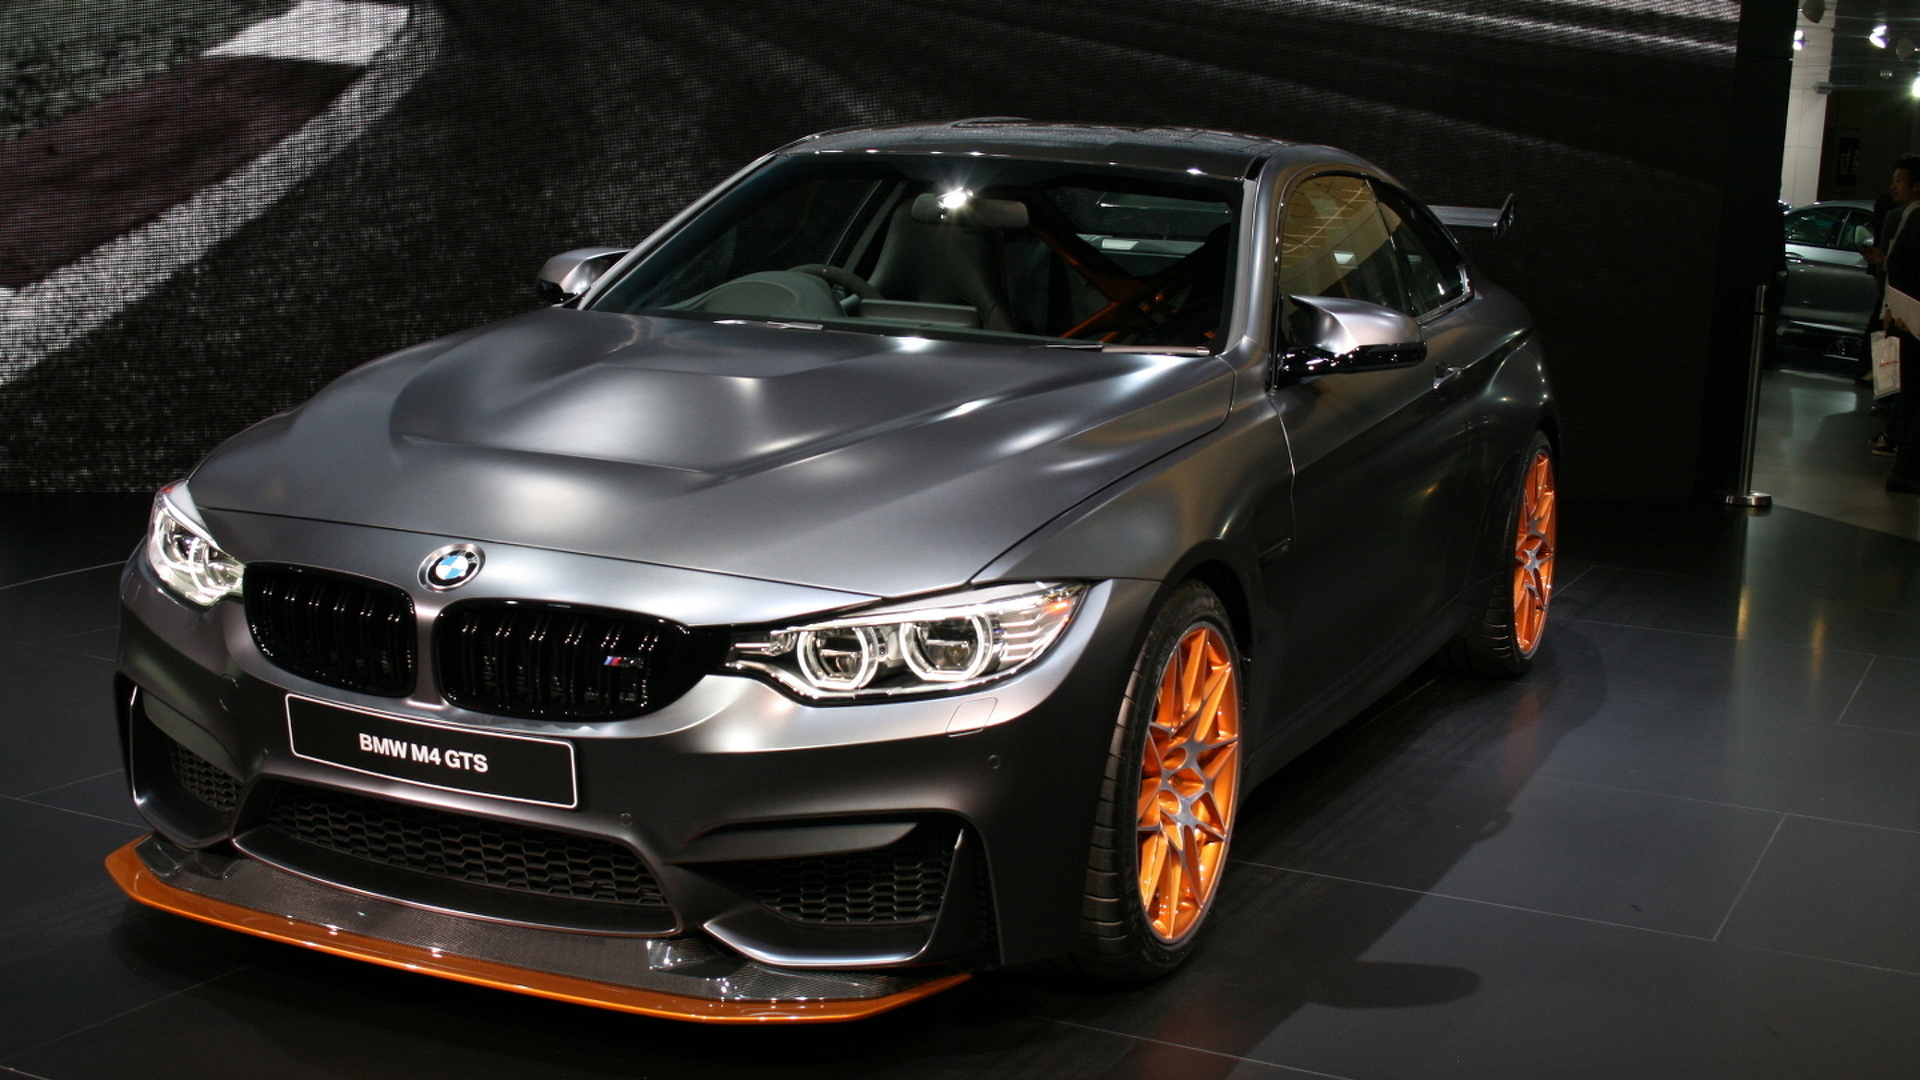 bmw m4 gts debuts in tokyo with 500 ps. Black Bedroom Furniture Sets. Home Design Ideas